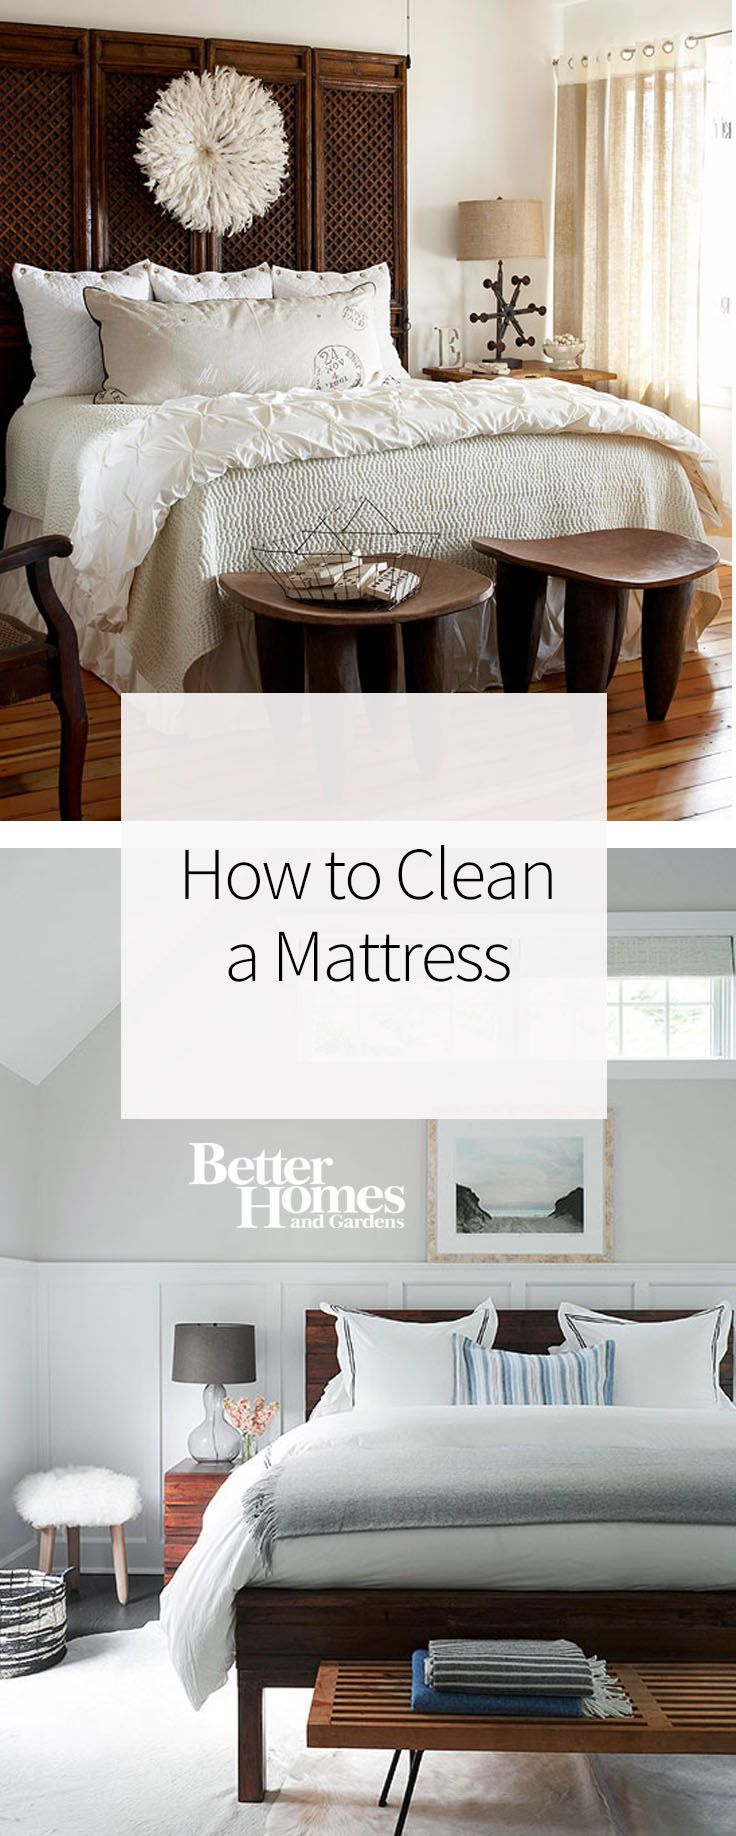 How to clean your bed - Remove Stains And Eliminate Dust And Dust Mites With These Easy Ways To Clean A Mattress